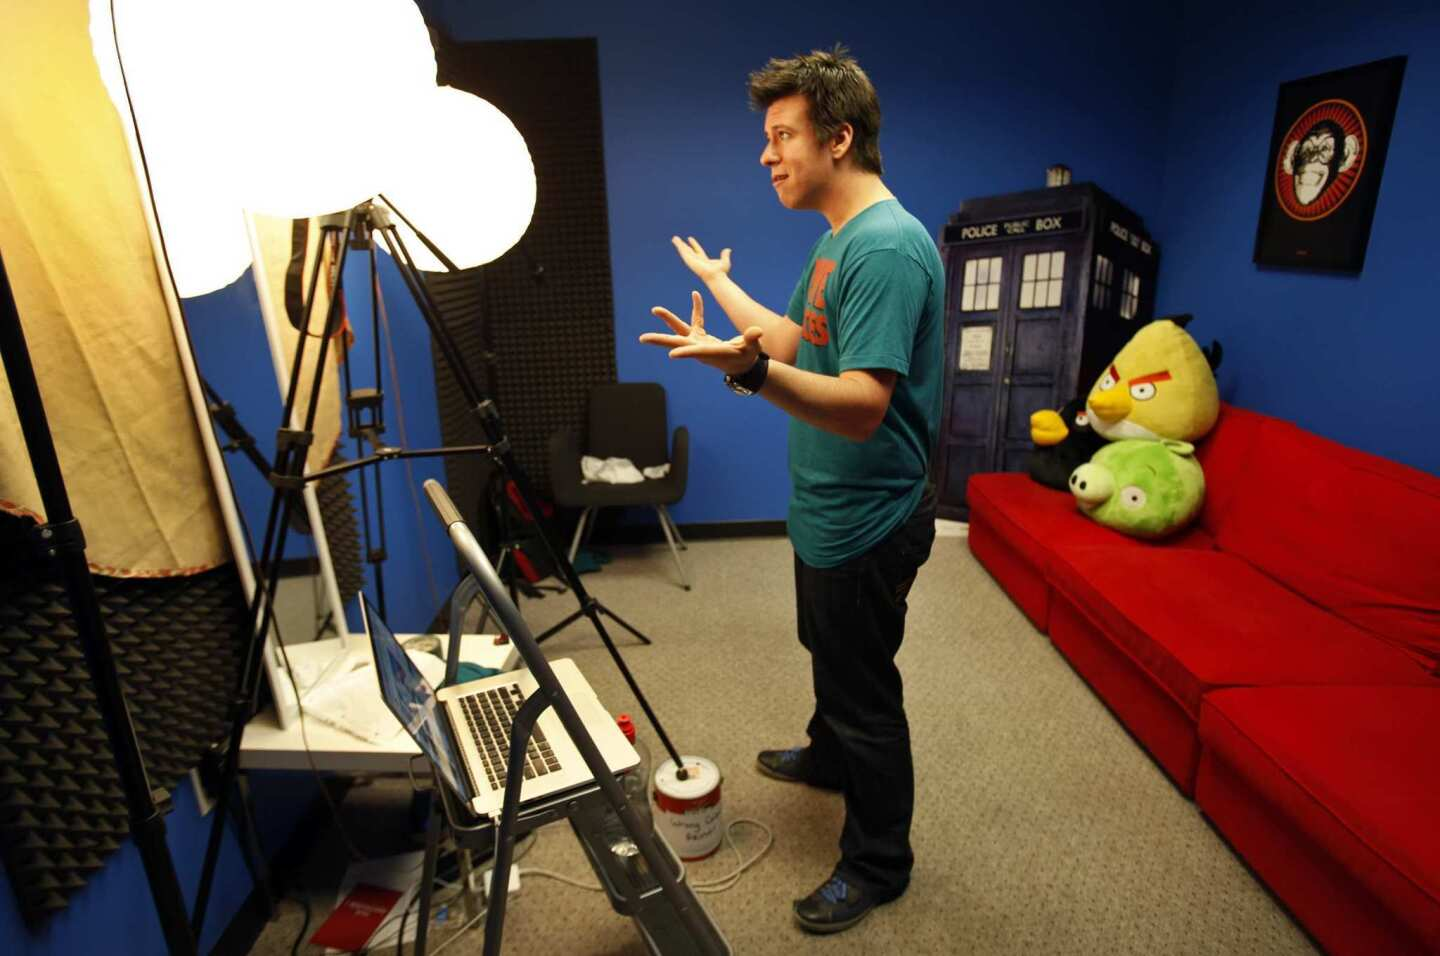 """Philip DeFranco delivers his lines to his camera during a run-through Aug. 21 in the simple studio of his Woodland Hills production offices where he records his show as host of the """"The Philip DeFranco Show,"""" a news program on YouTube about news and pop culture. The show rivals Jon Stewart's """"The Daily Show"""" in audience size. As the news anchor, DeFranco wears T-shirts instead of the standard-issue suit-and-tie, and the anchor desk has been replaced with a red futon decorated with stuffed characters."""